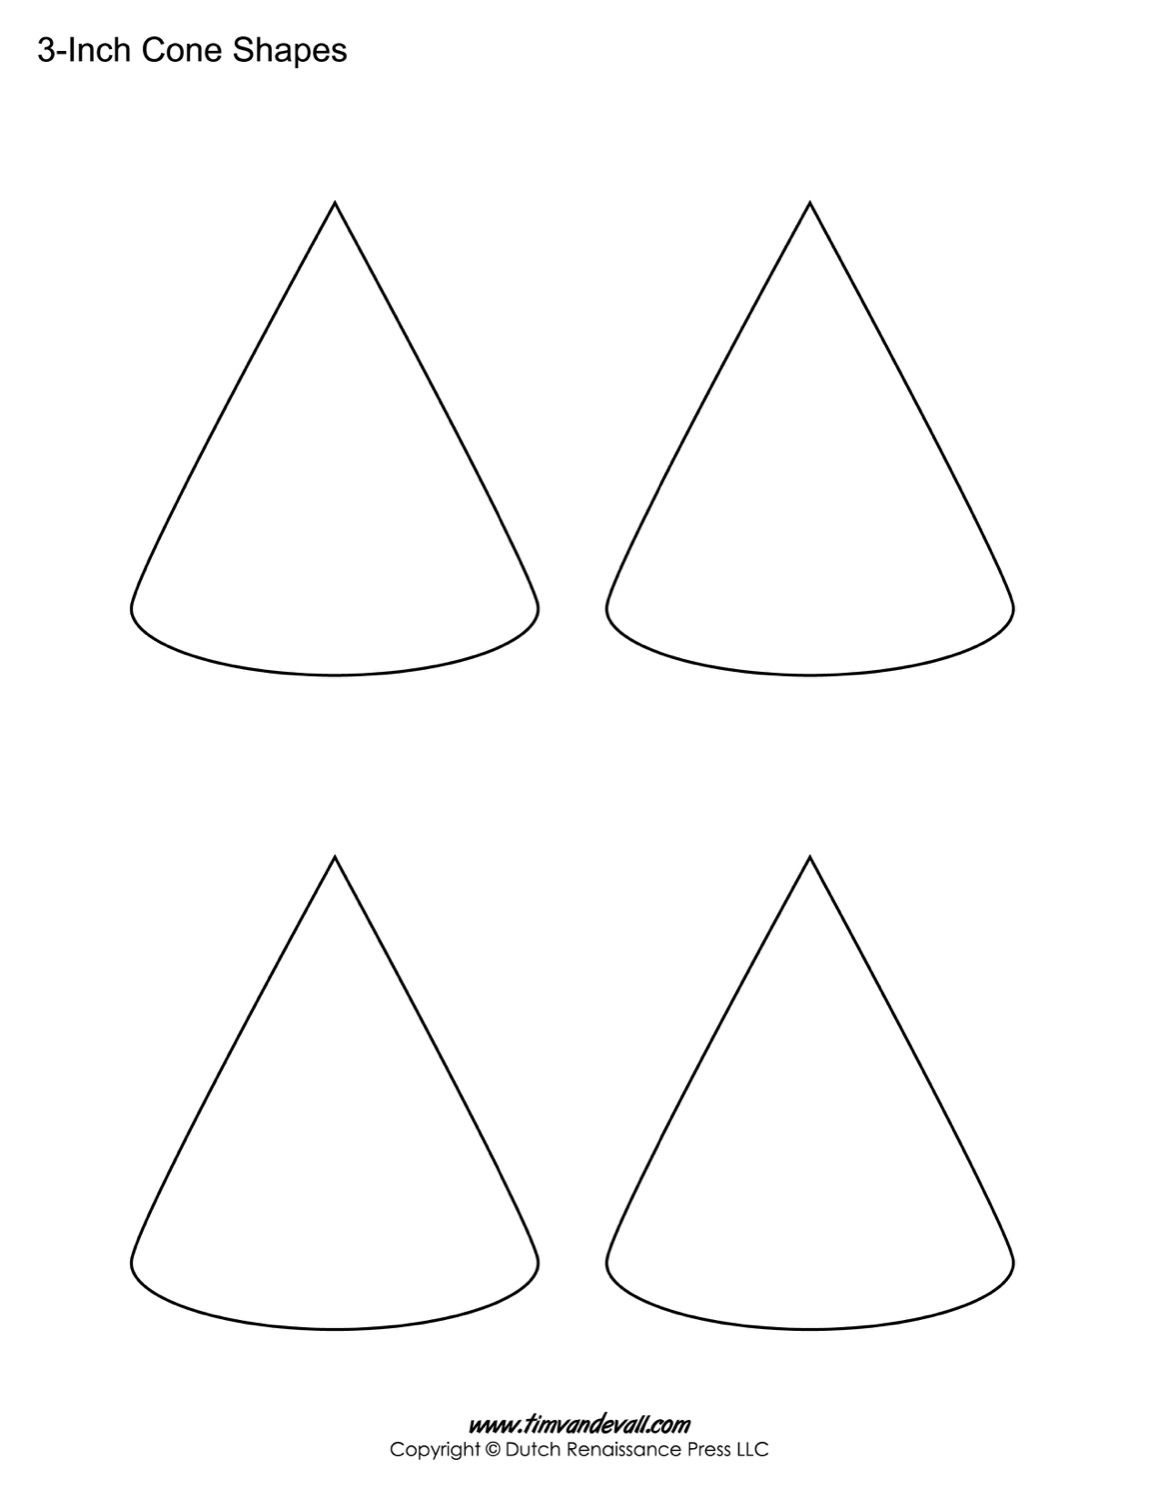 If You Need To Print A Cone Shape For A School Homework